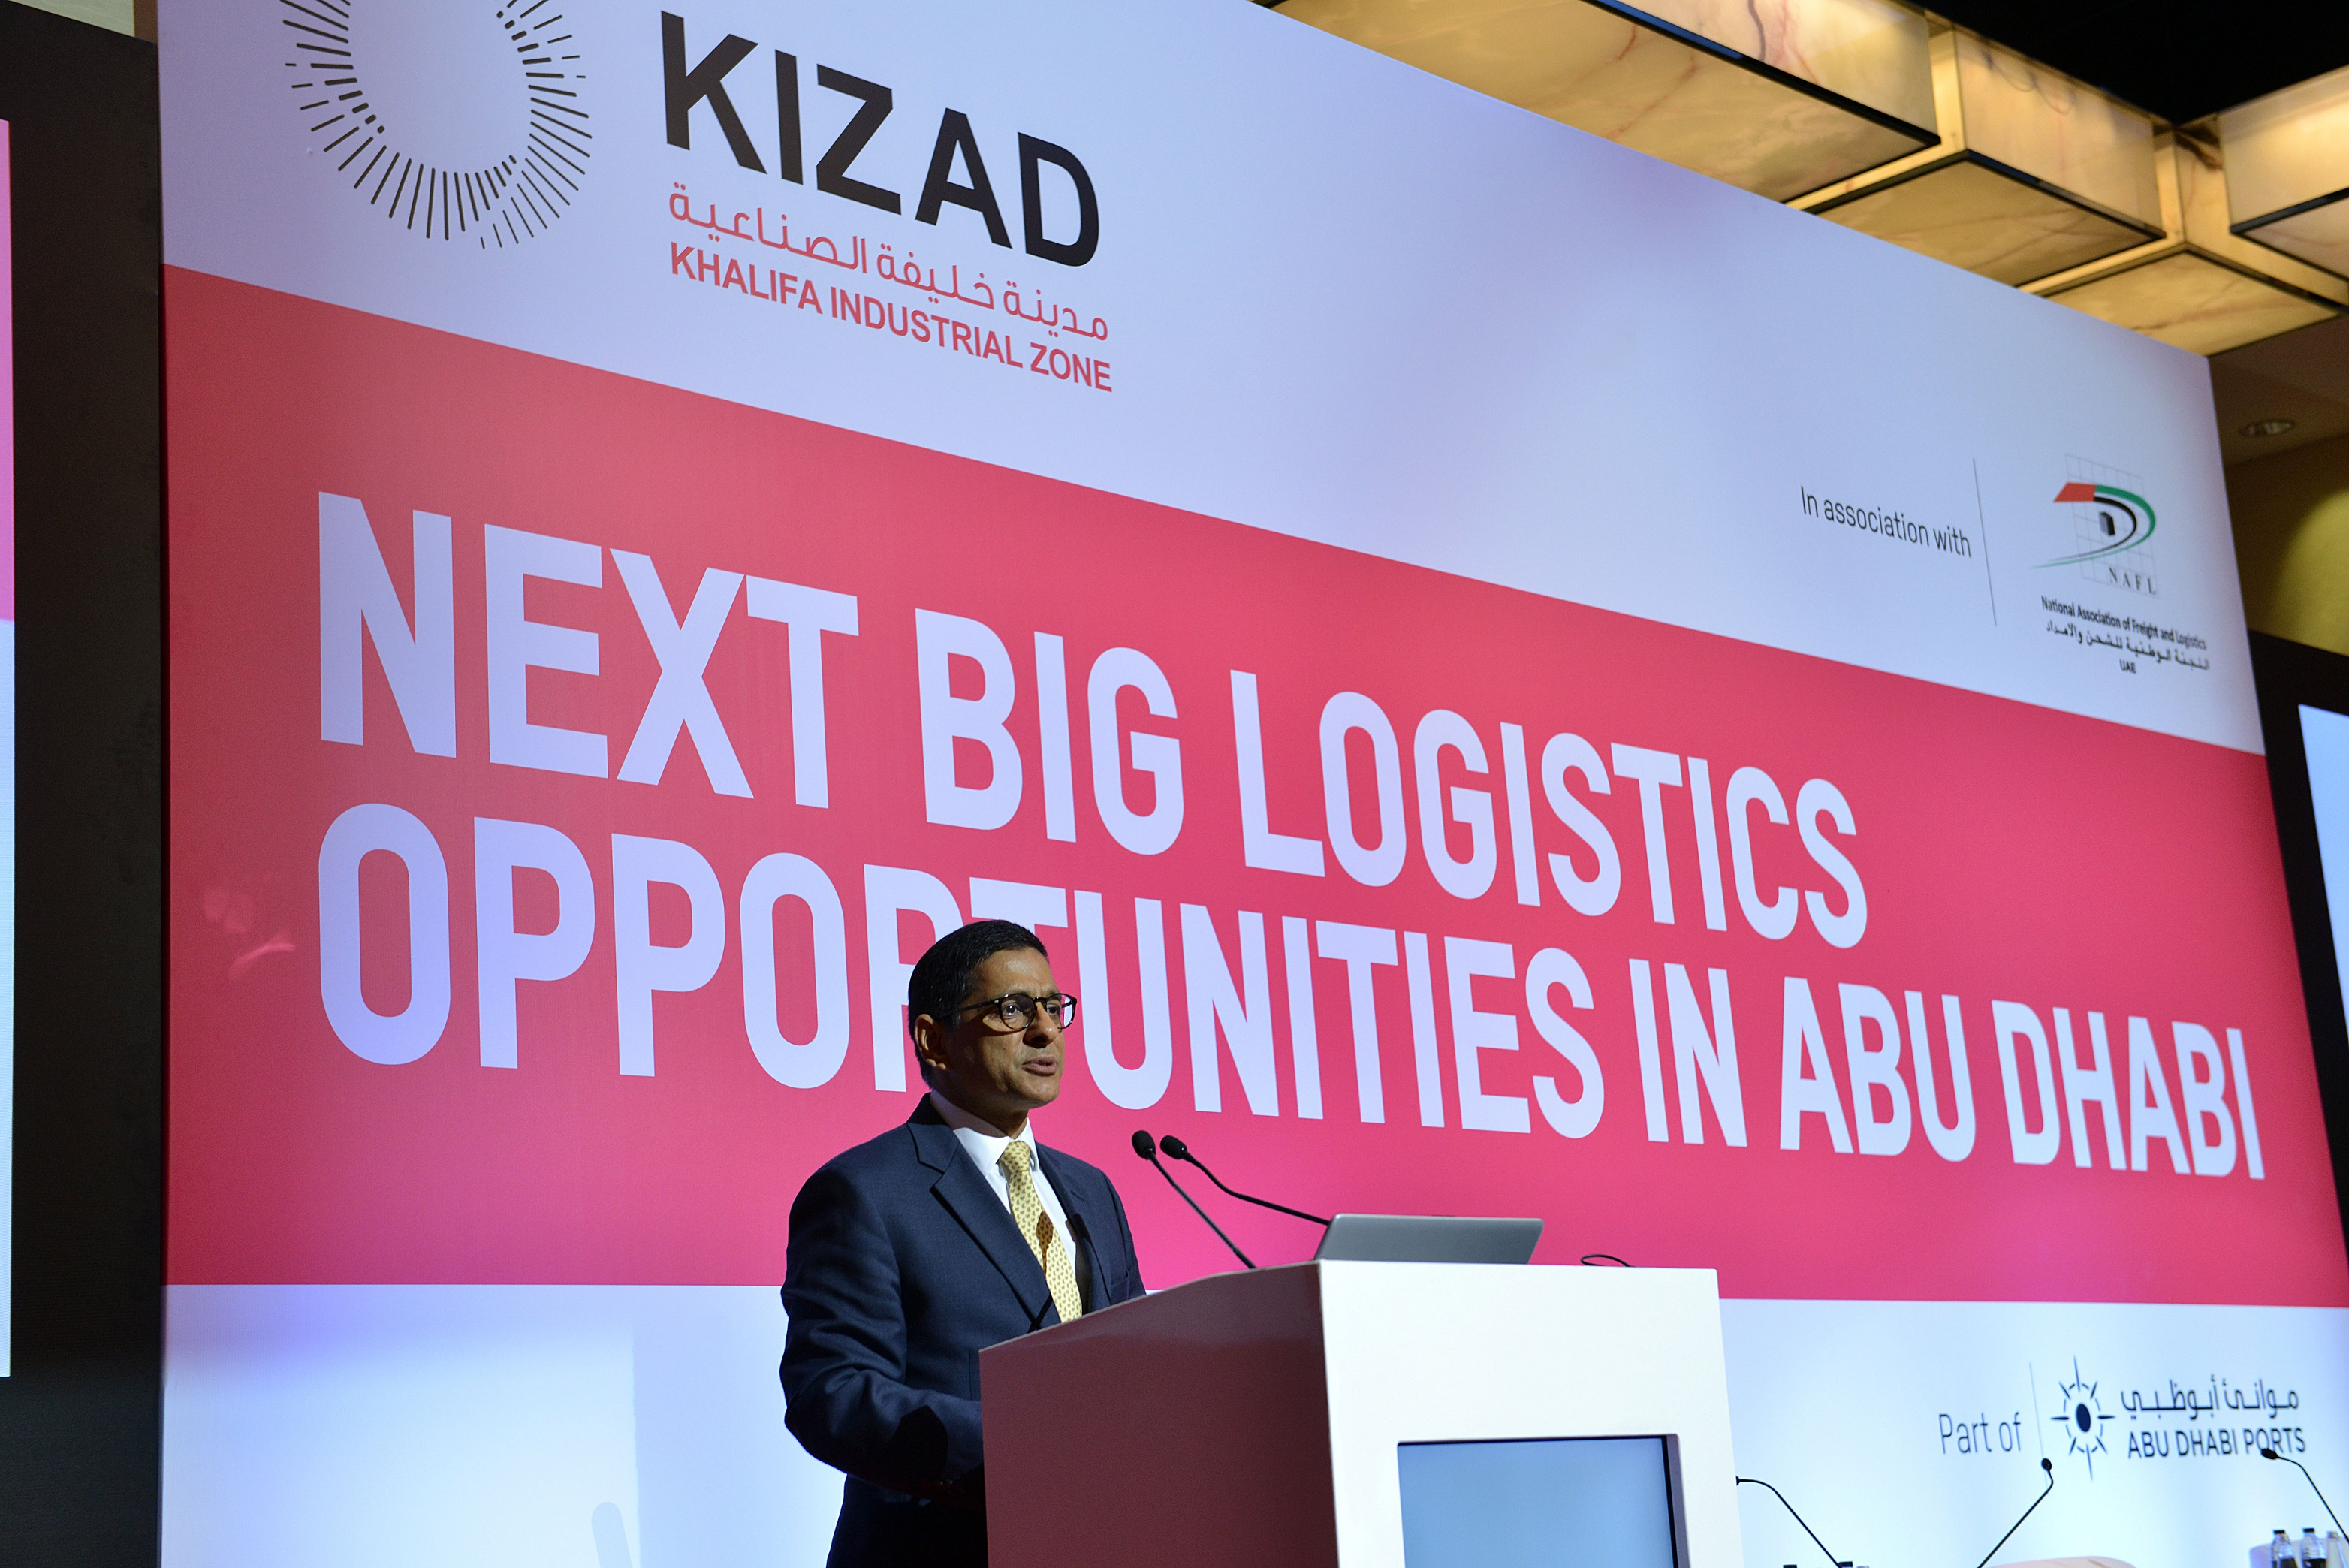 KIZAD highlights array of logistics solutions that are key to unlocking UAE-based companies' growth